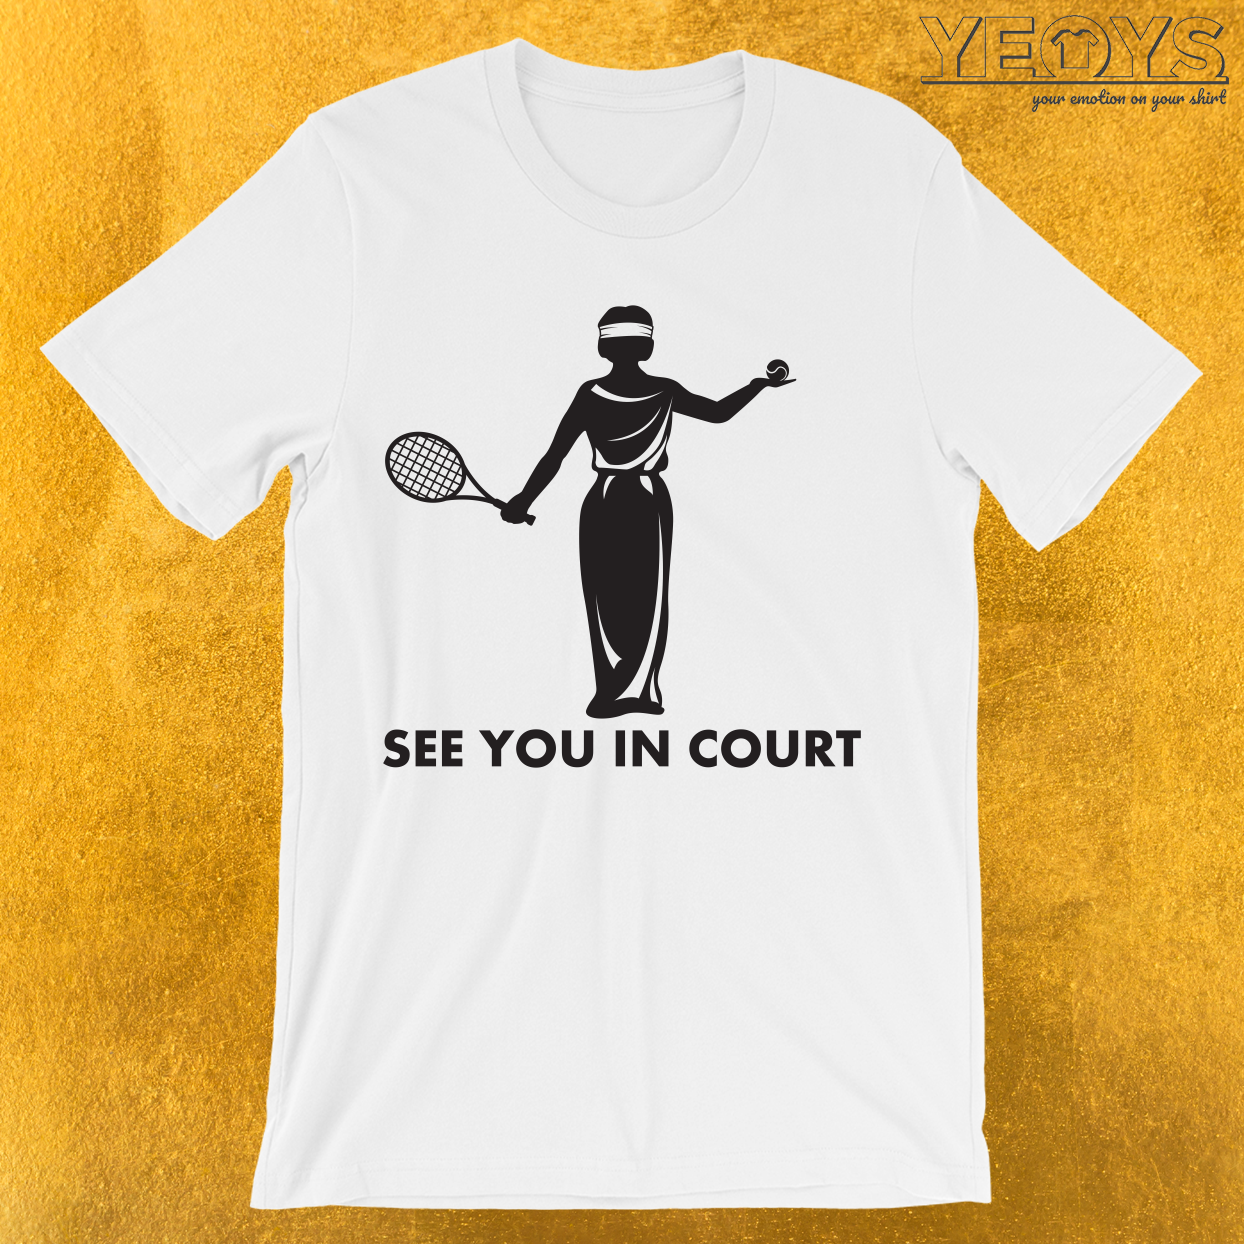 See You In Court Tennis Pun T-Shirt